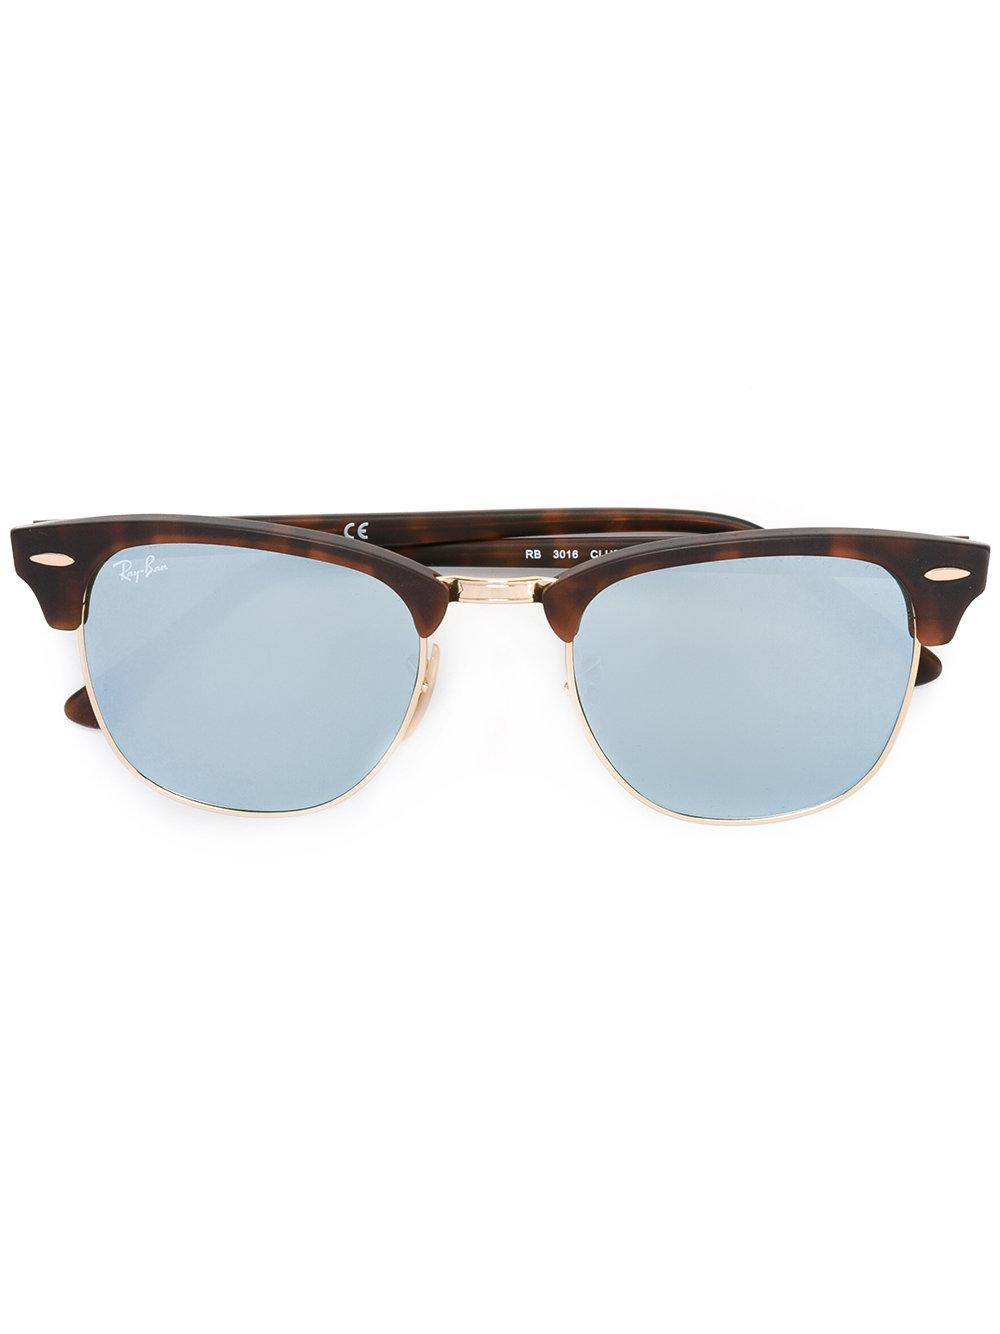 4ca9d51b97 Ray Ban Clubmaster Acetate And Metal Sunglasses « Heritage Malta